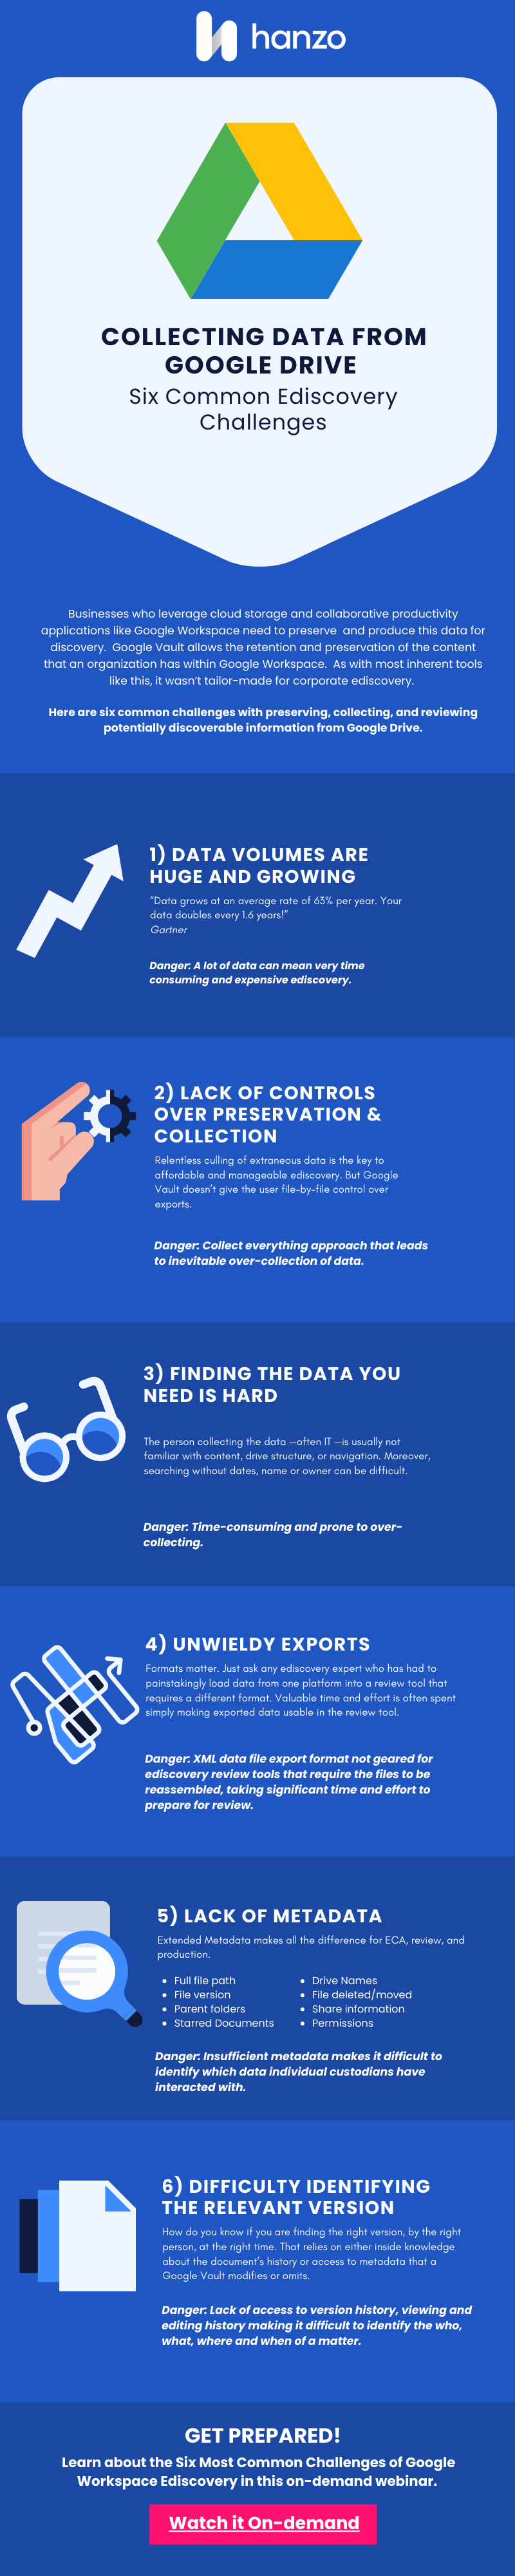 Infographic of the 6 Most Common Ediscovery Workplace Challenges